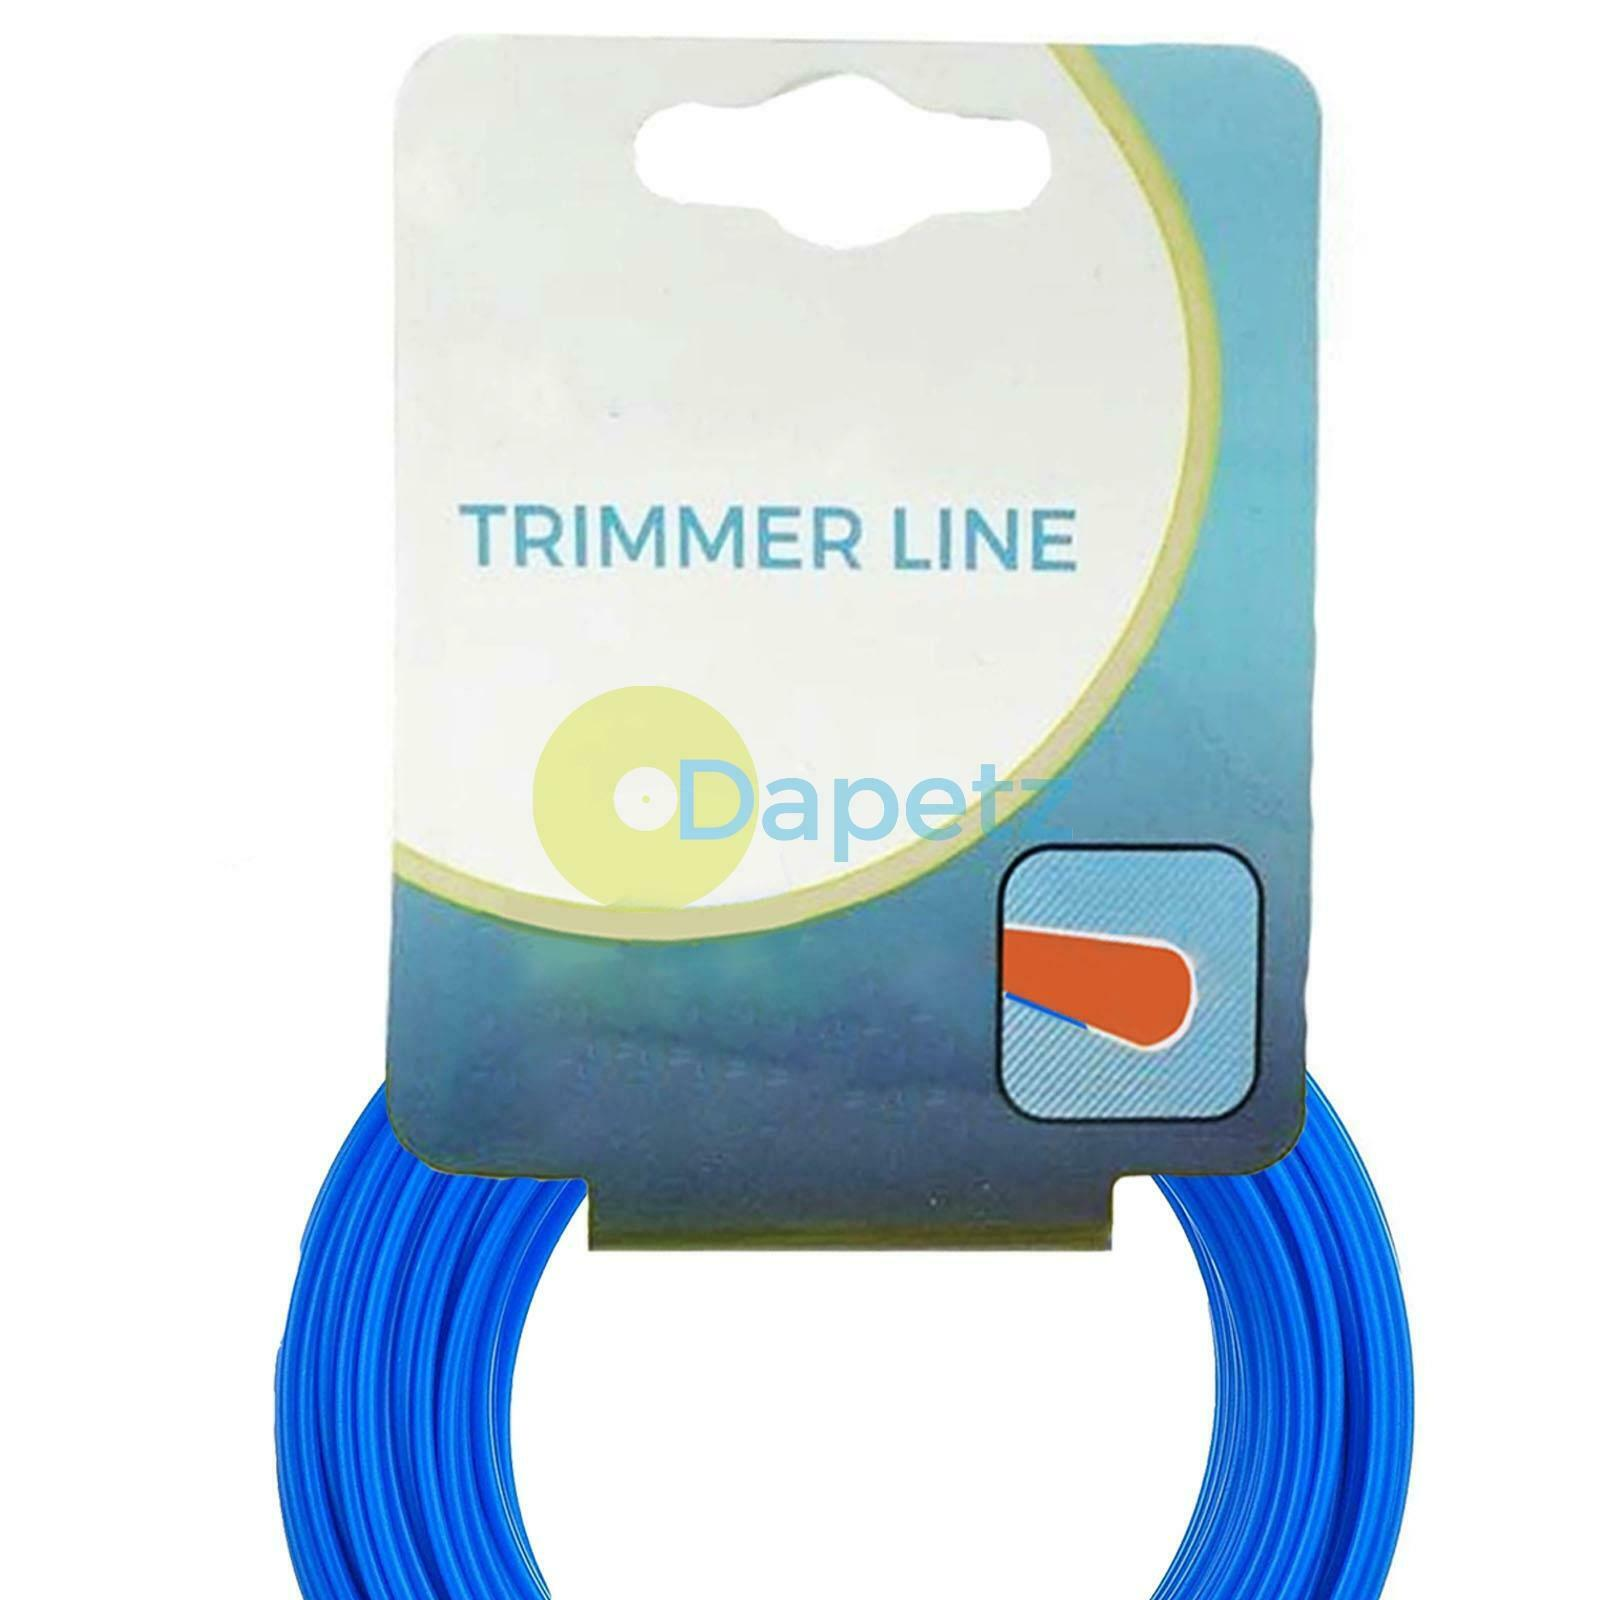 Universal SL002 1.6MM 15M TRIMMER LINE BLUE IDEAL CUTTING LINE FOR GRASS TRIMMER